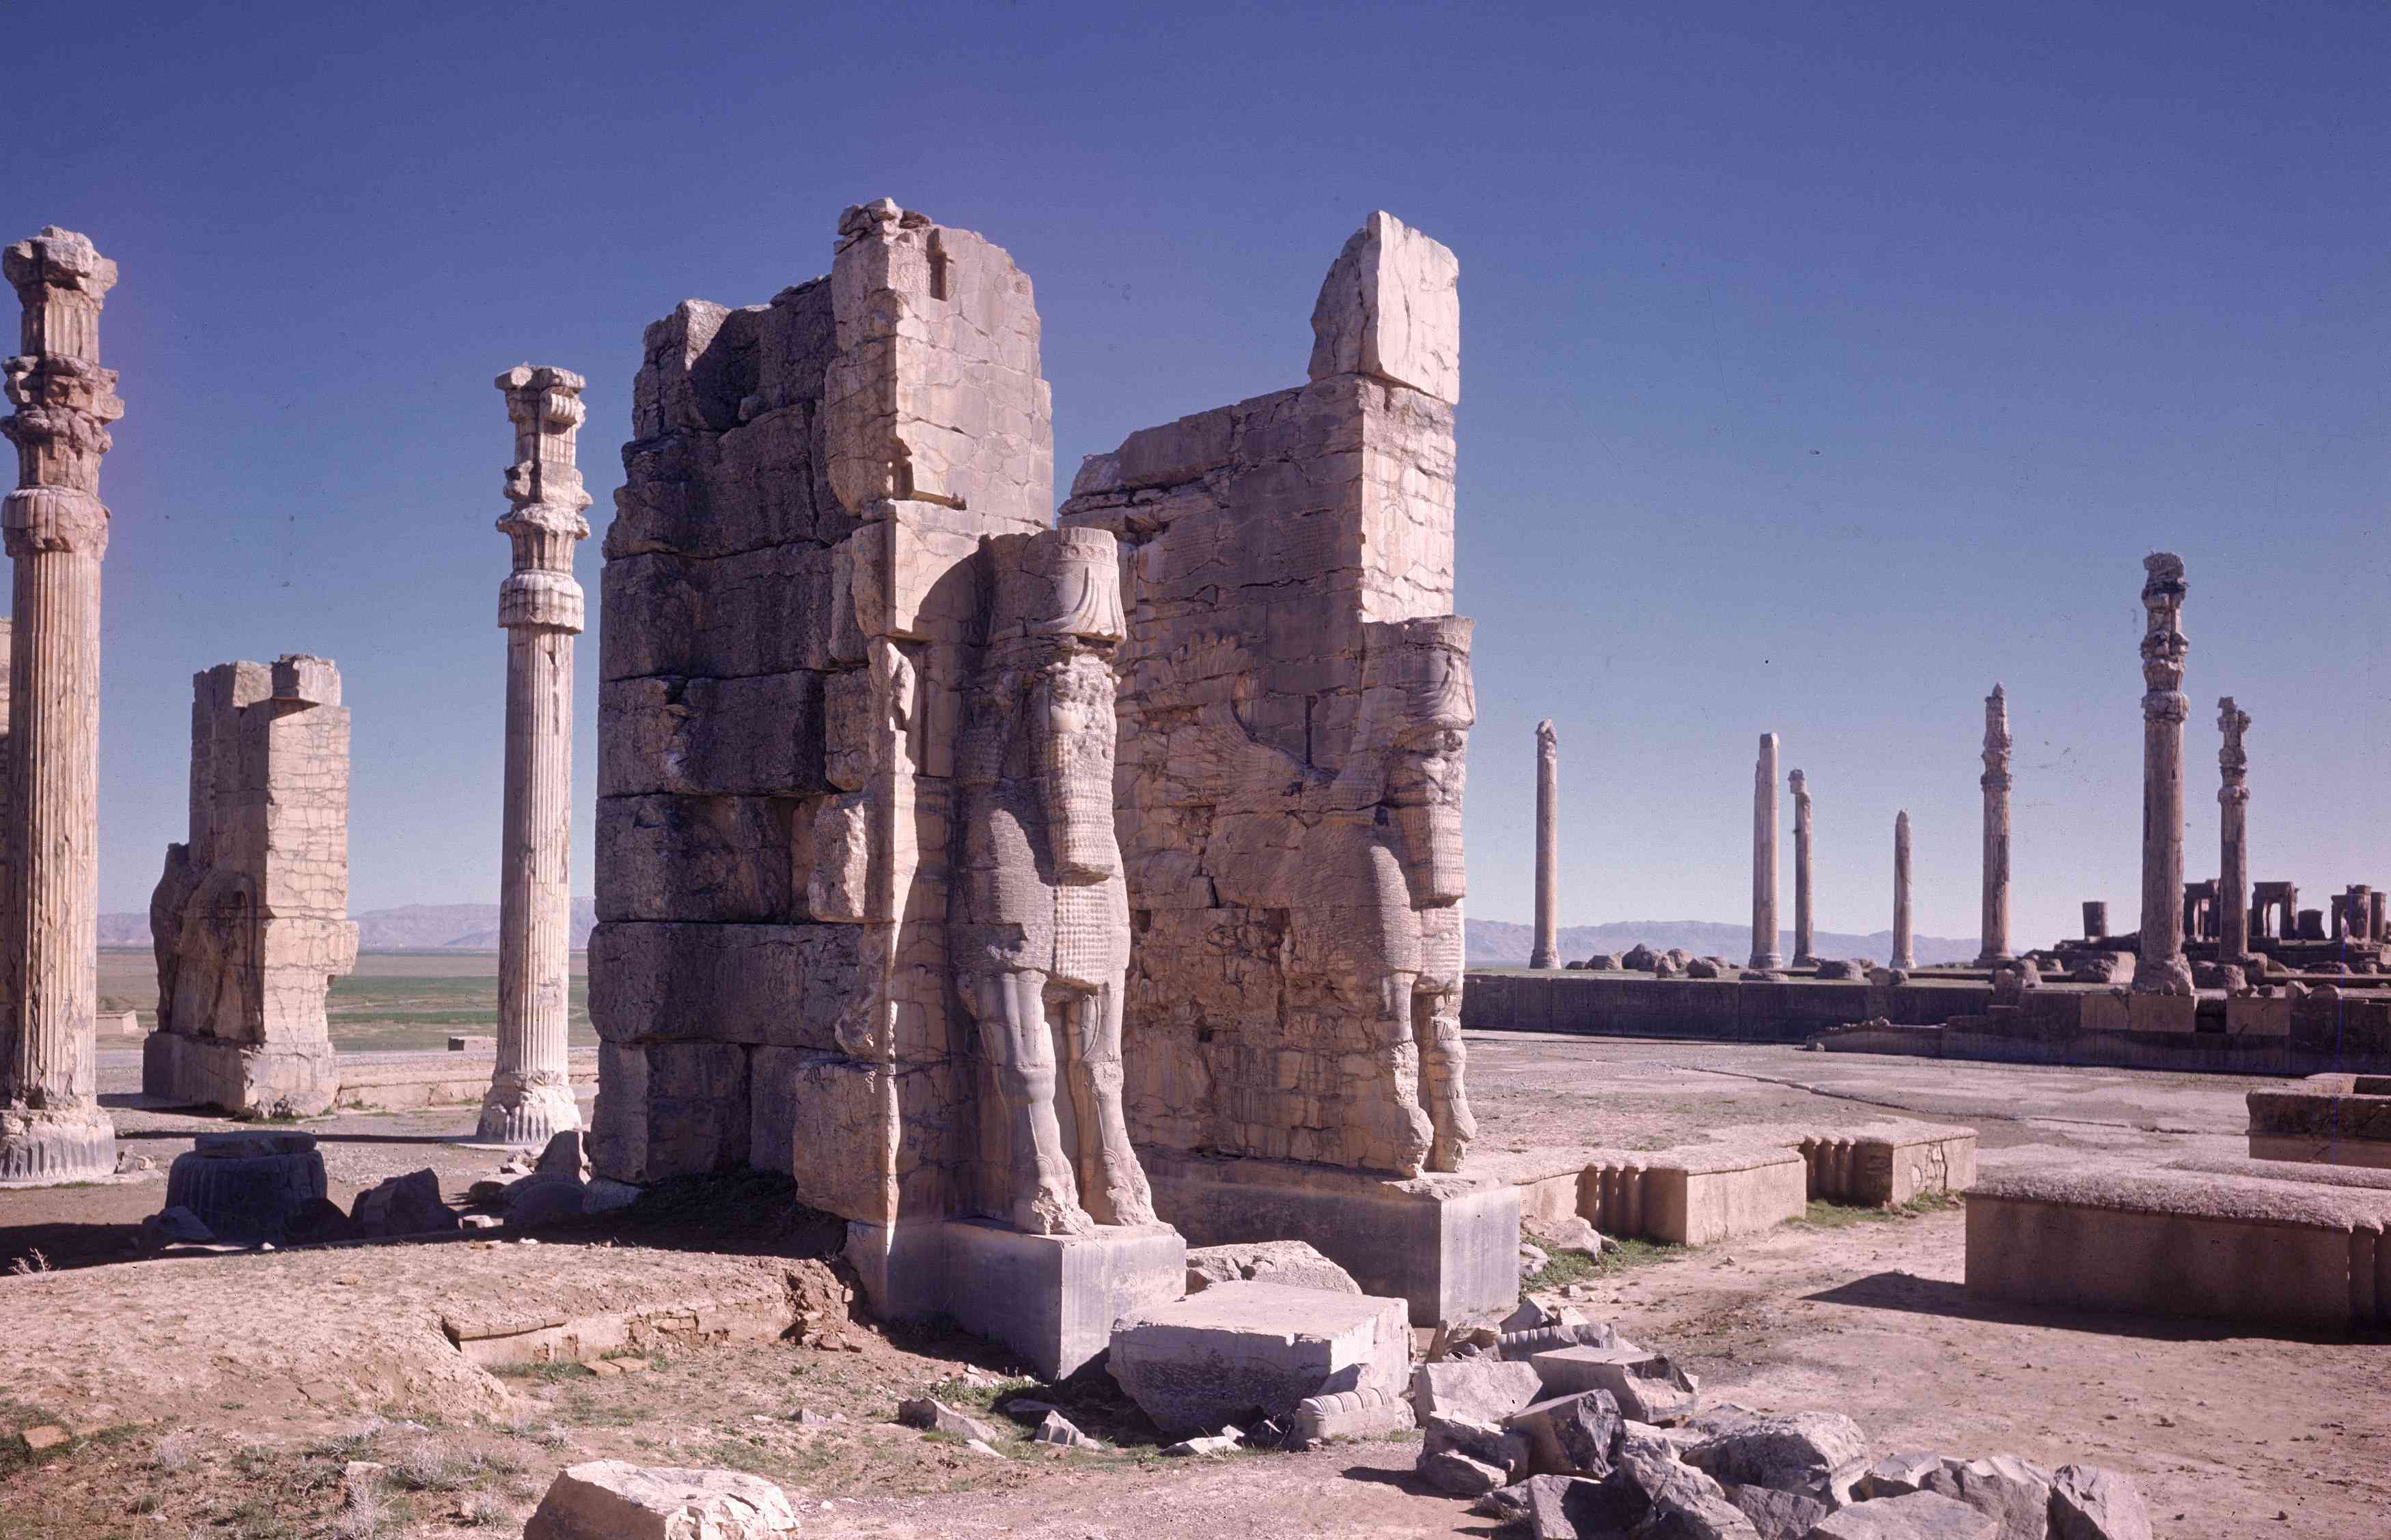 Gateway of All Lands in Xerxes' City of Persepolis